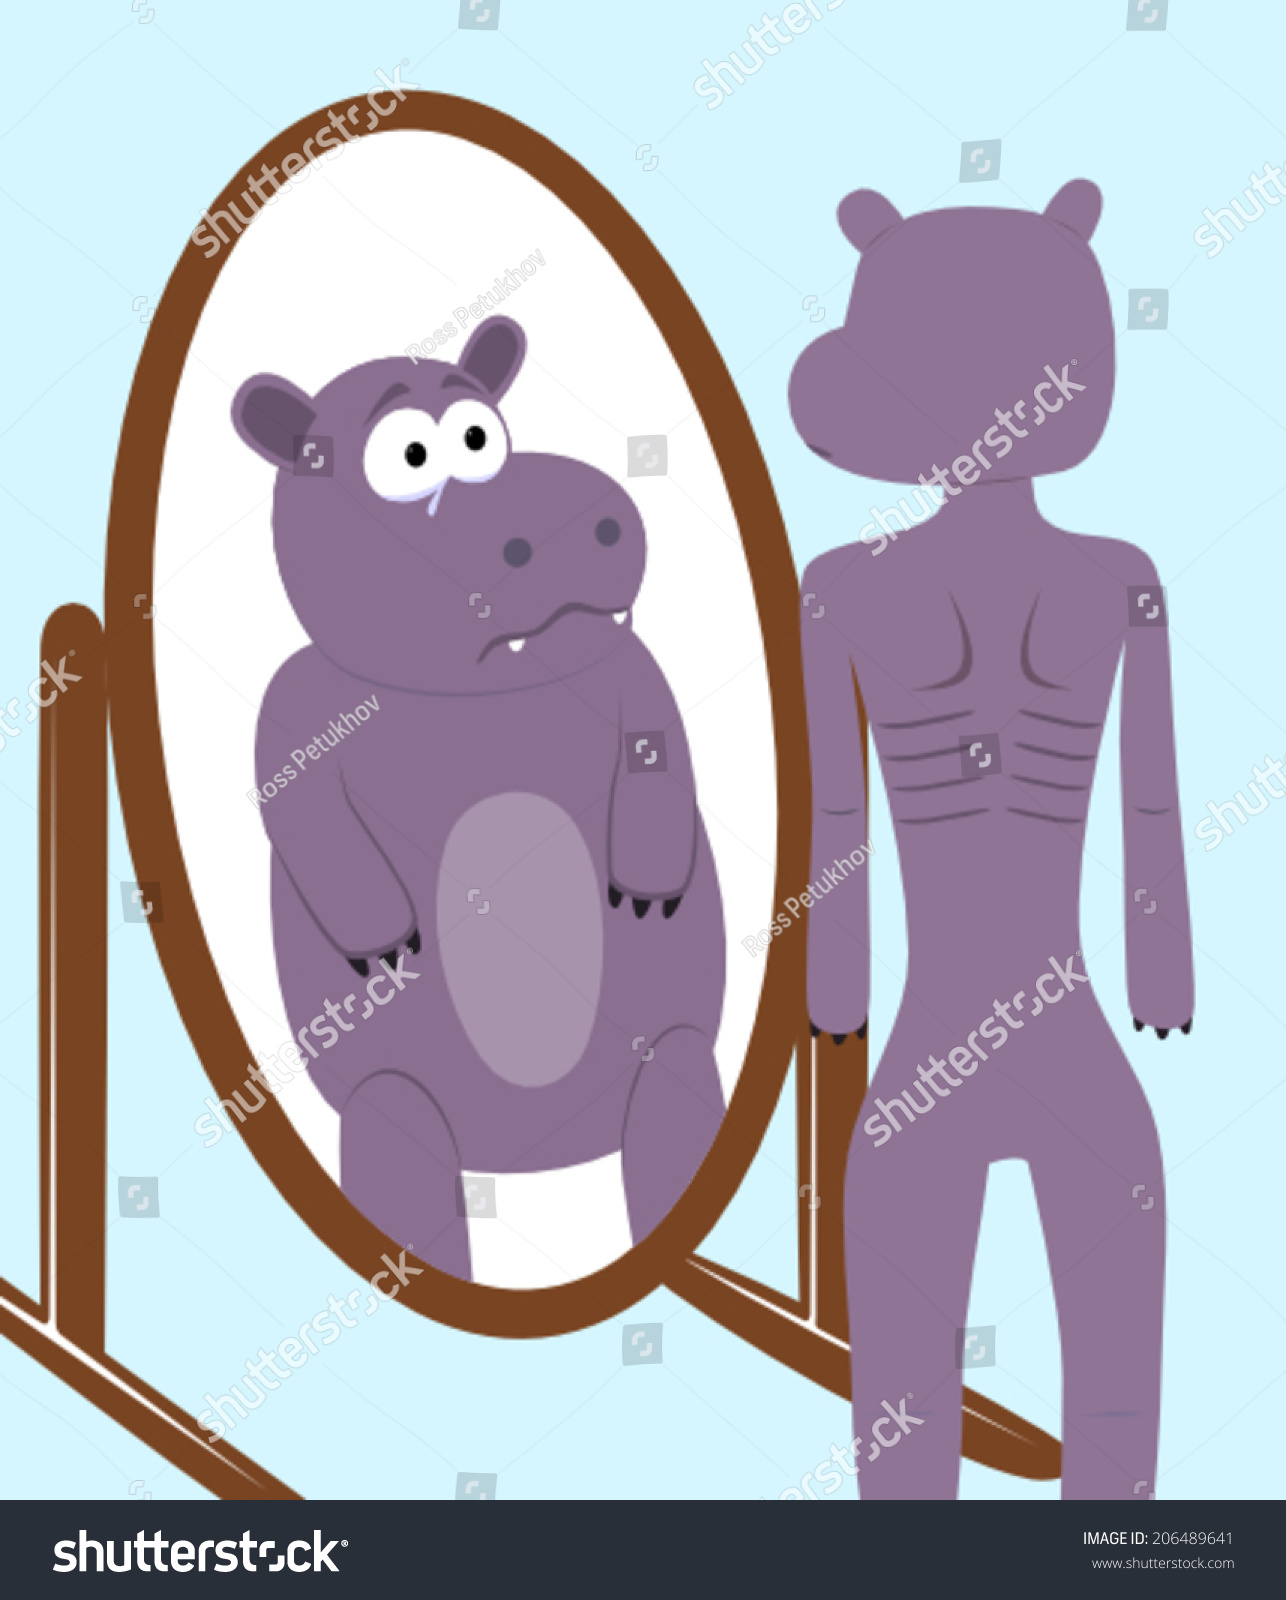 http://image.shutterstock.com/z/stock-vector-skinny-hippo-looking-at-the-mirror-and-seeing-a-fat-hippo-206489641.jpg